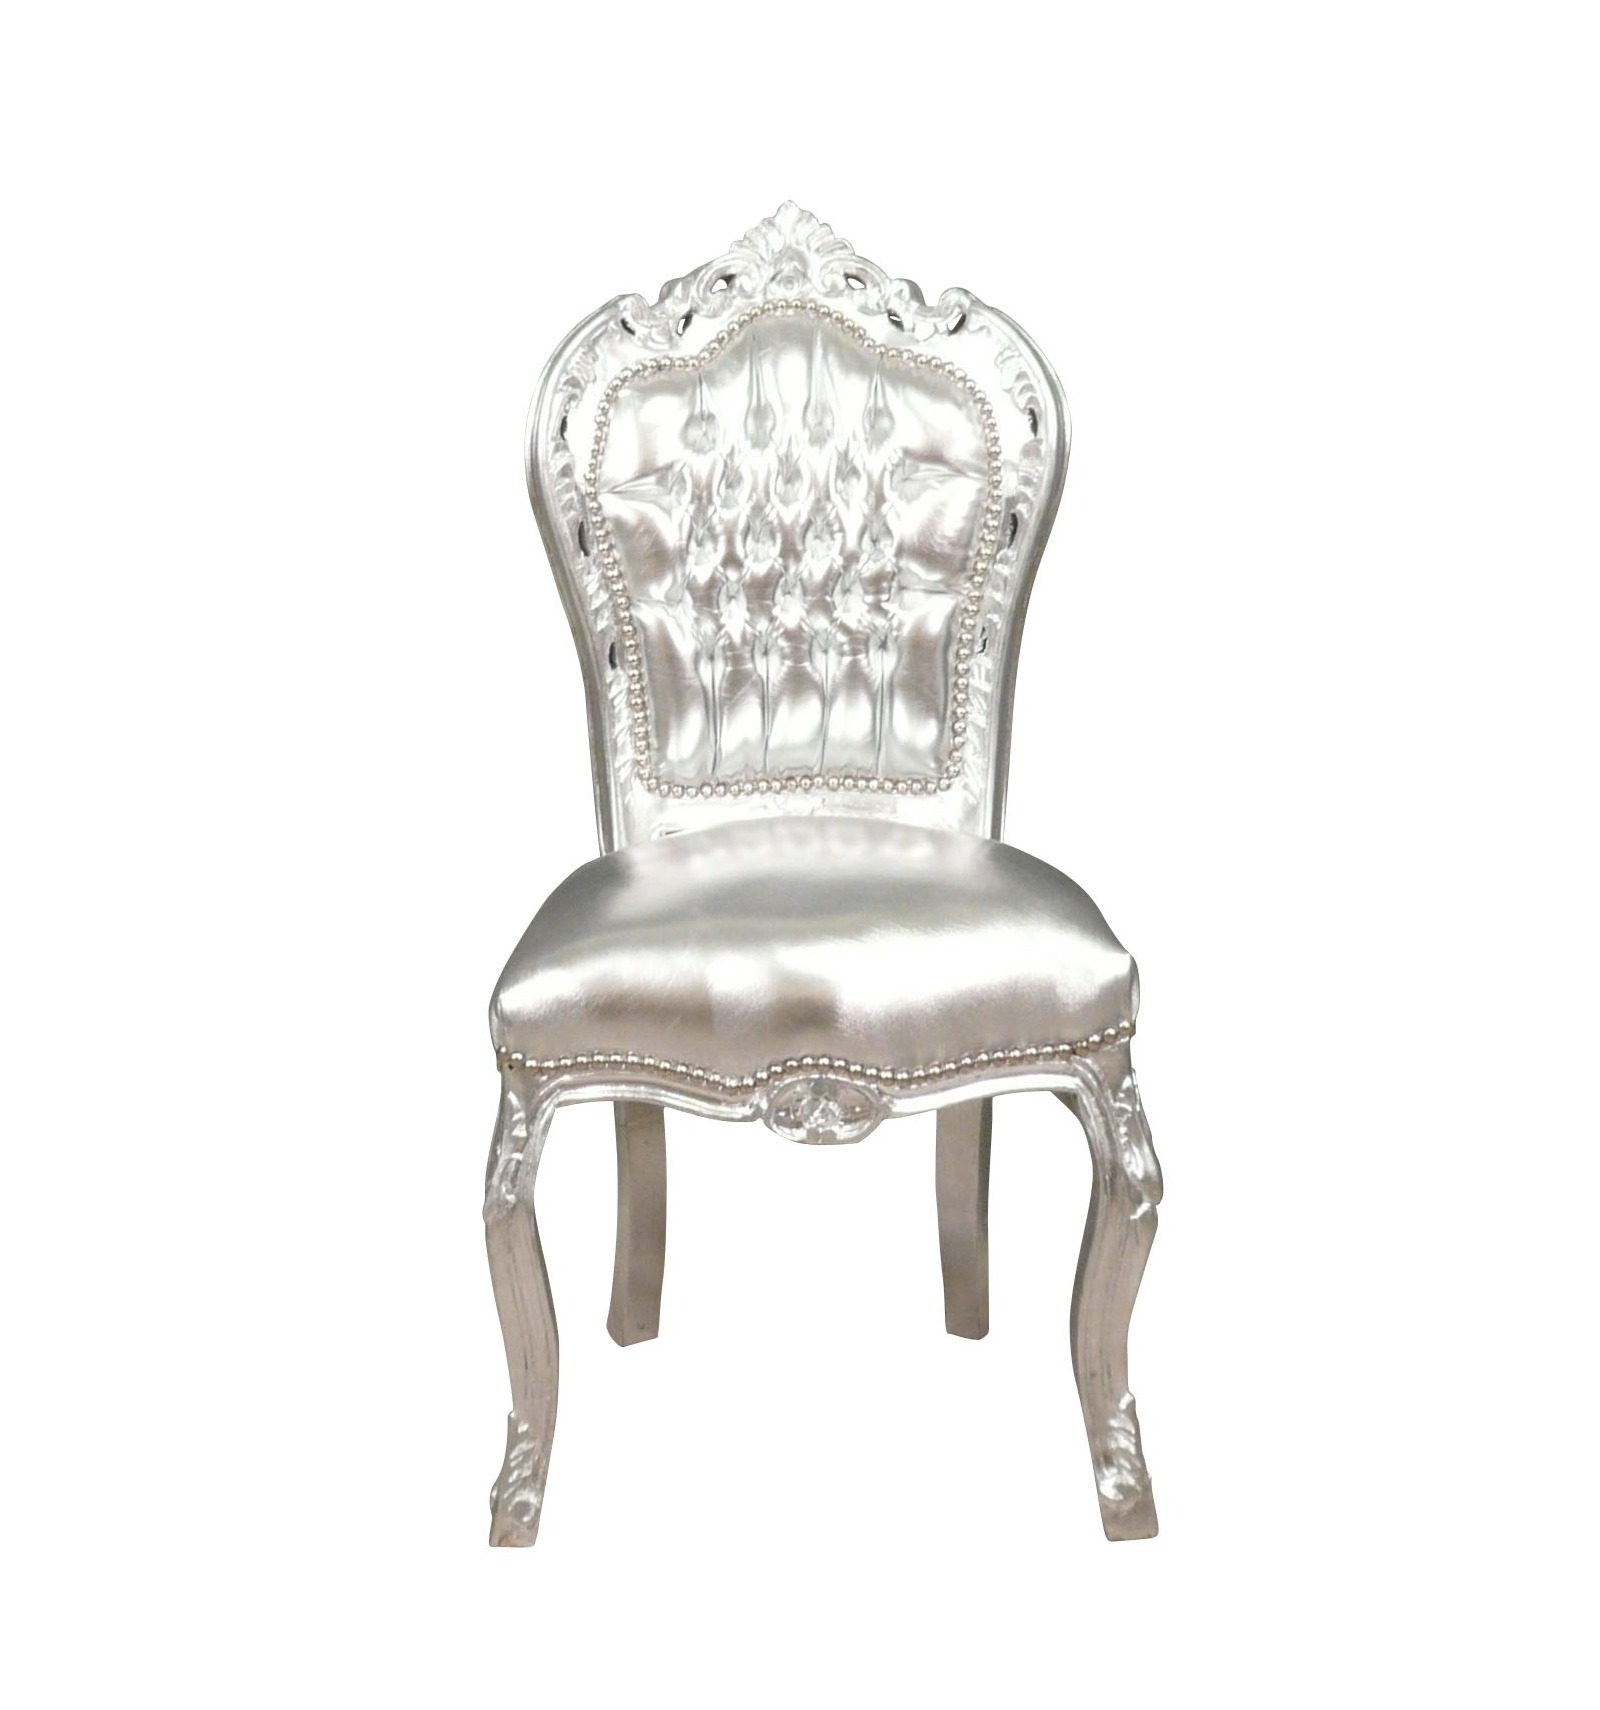 chaise baroque argentee